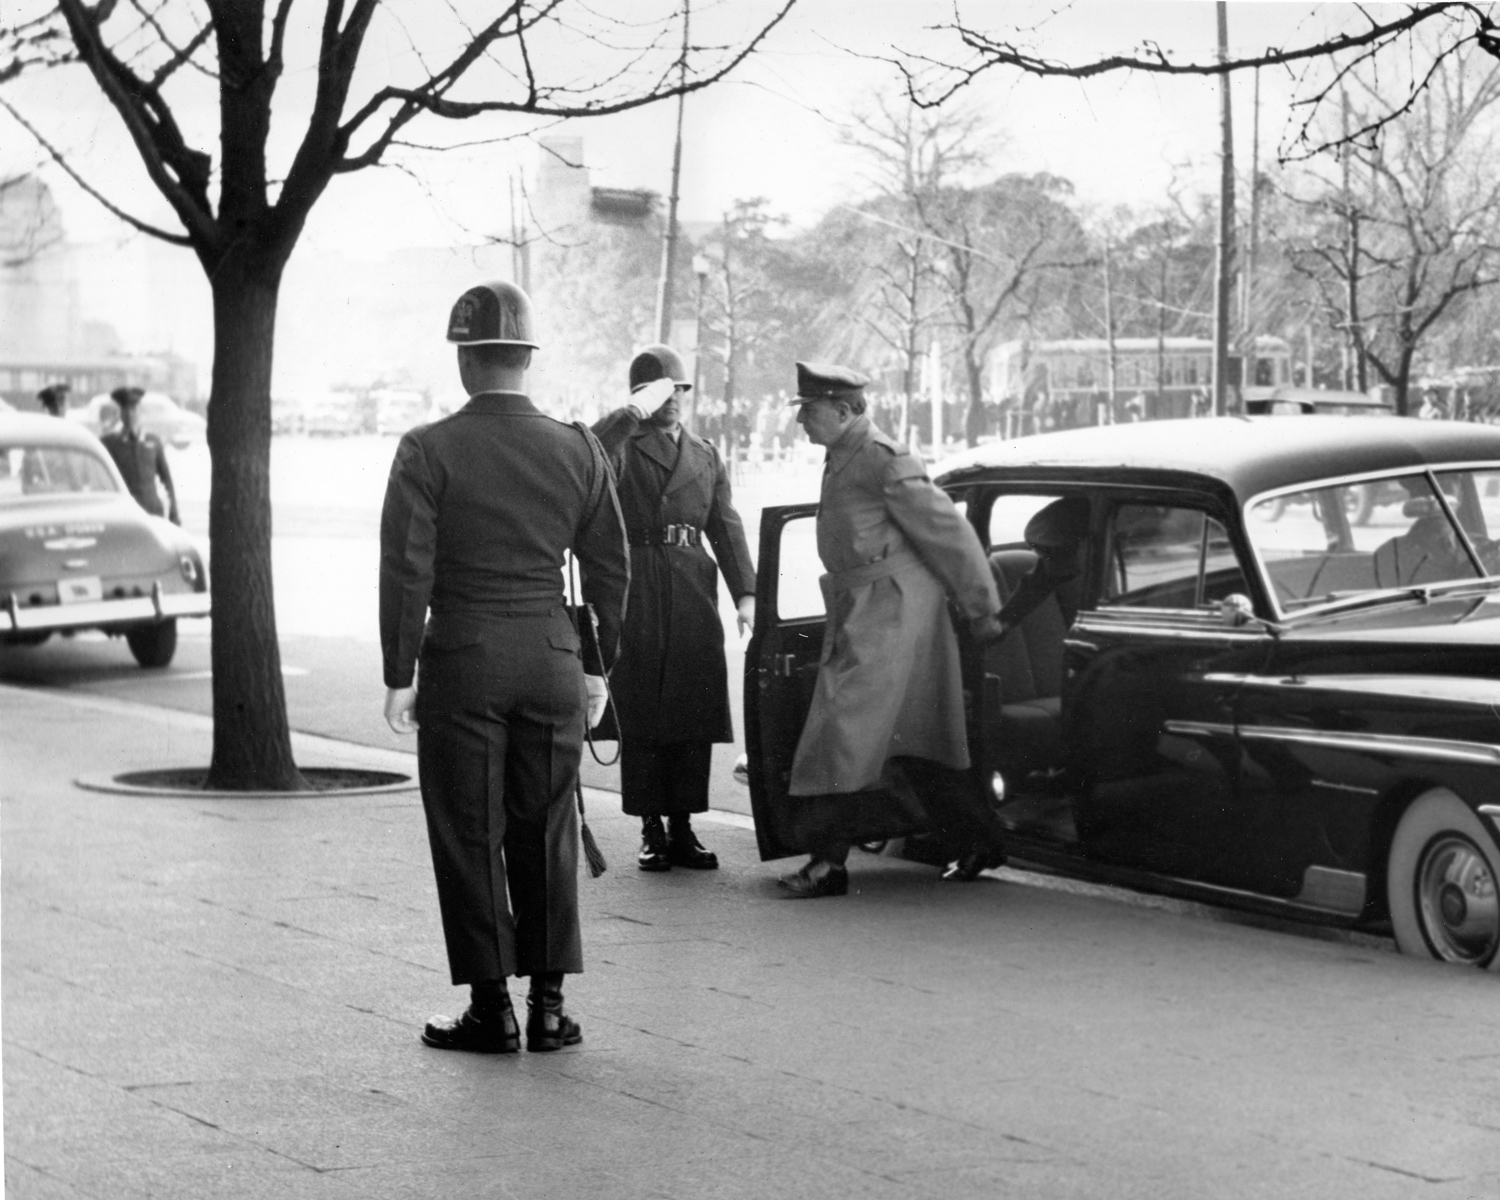 MacArthur arrives at his office on his 71st birthday at the General Headquarters of the Far East Command in his 1950 Chrysler Crown Imperial limousine.